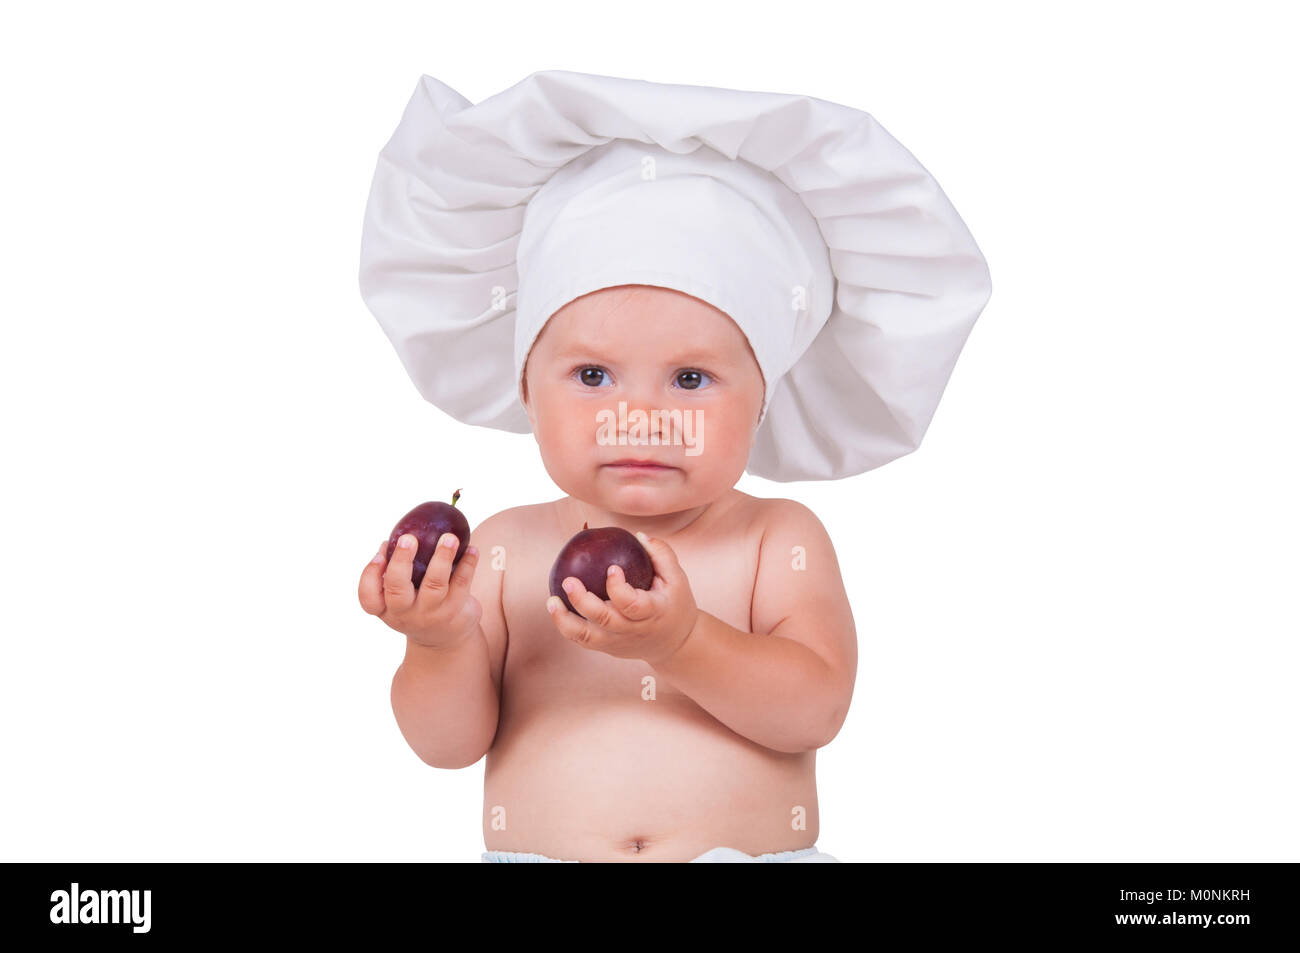 6262a2cbc A small child is eating plums in a chef suit on a white background ...